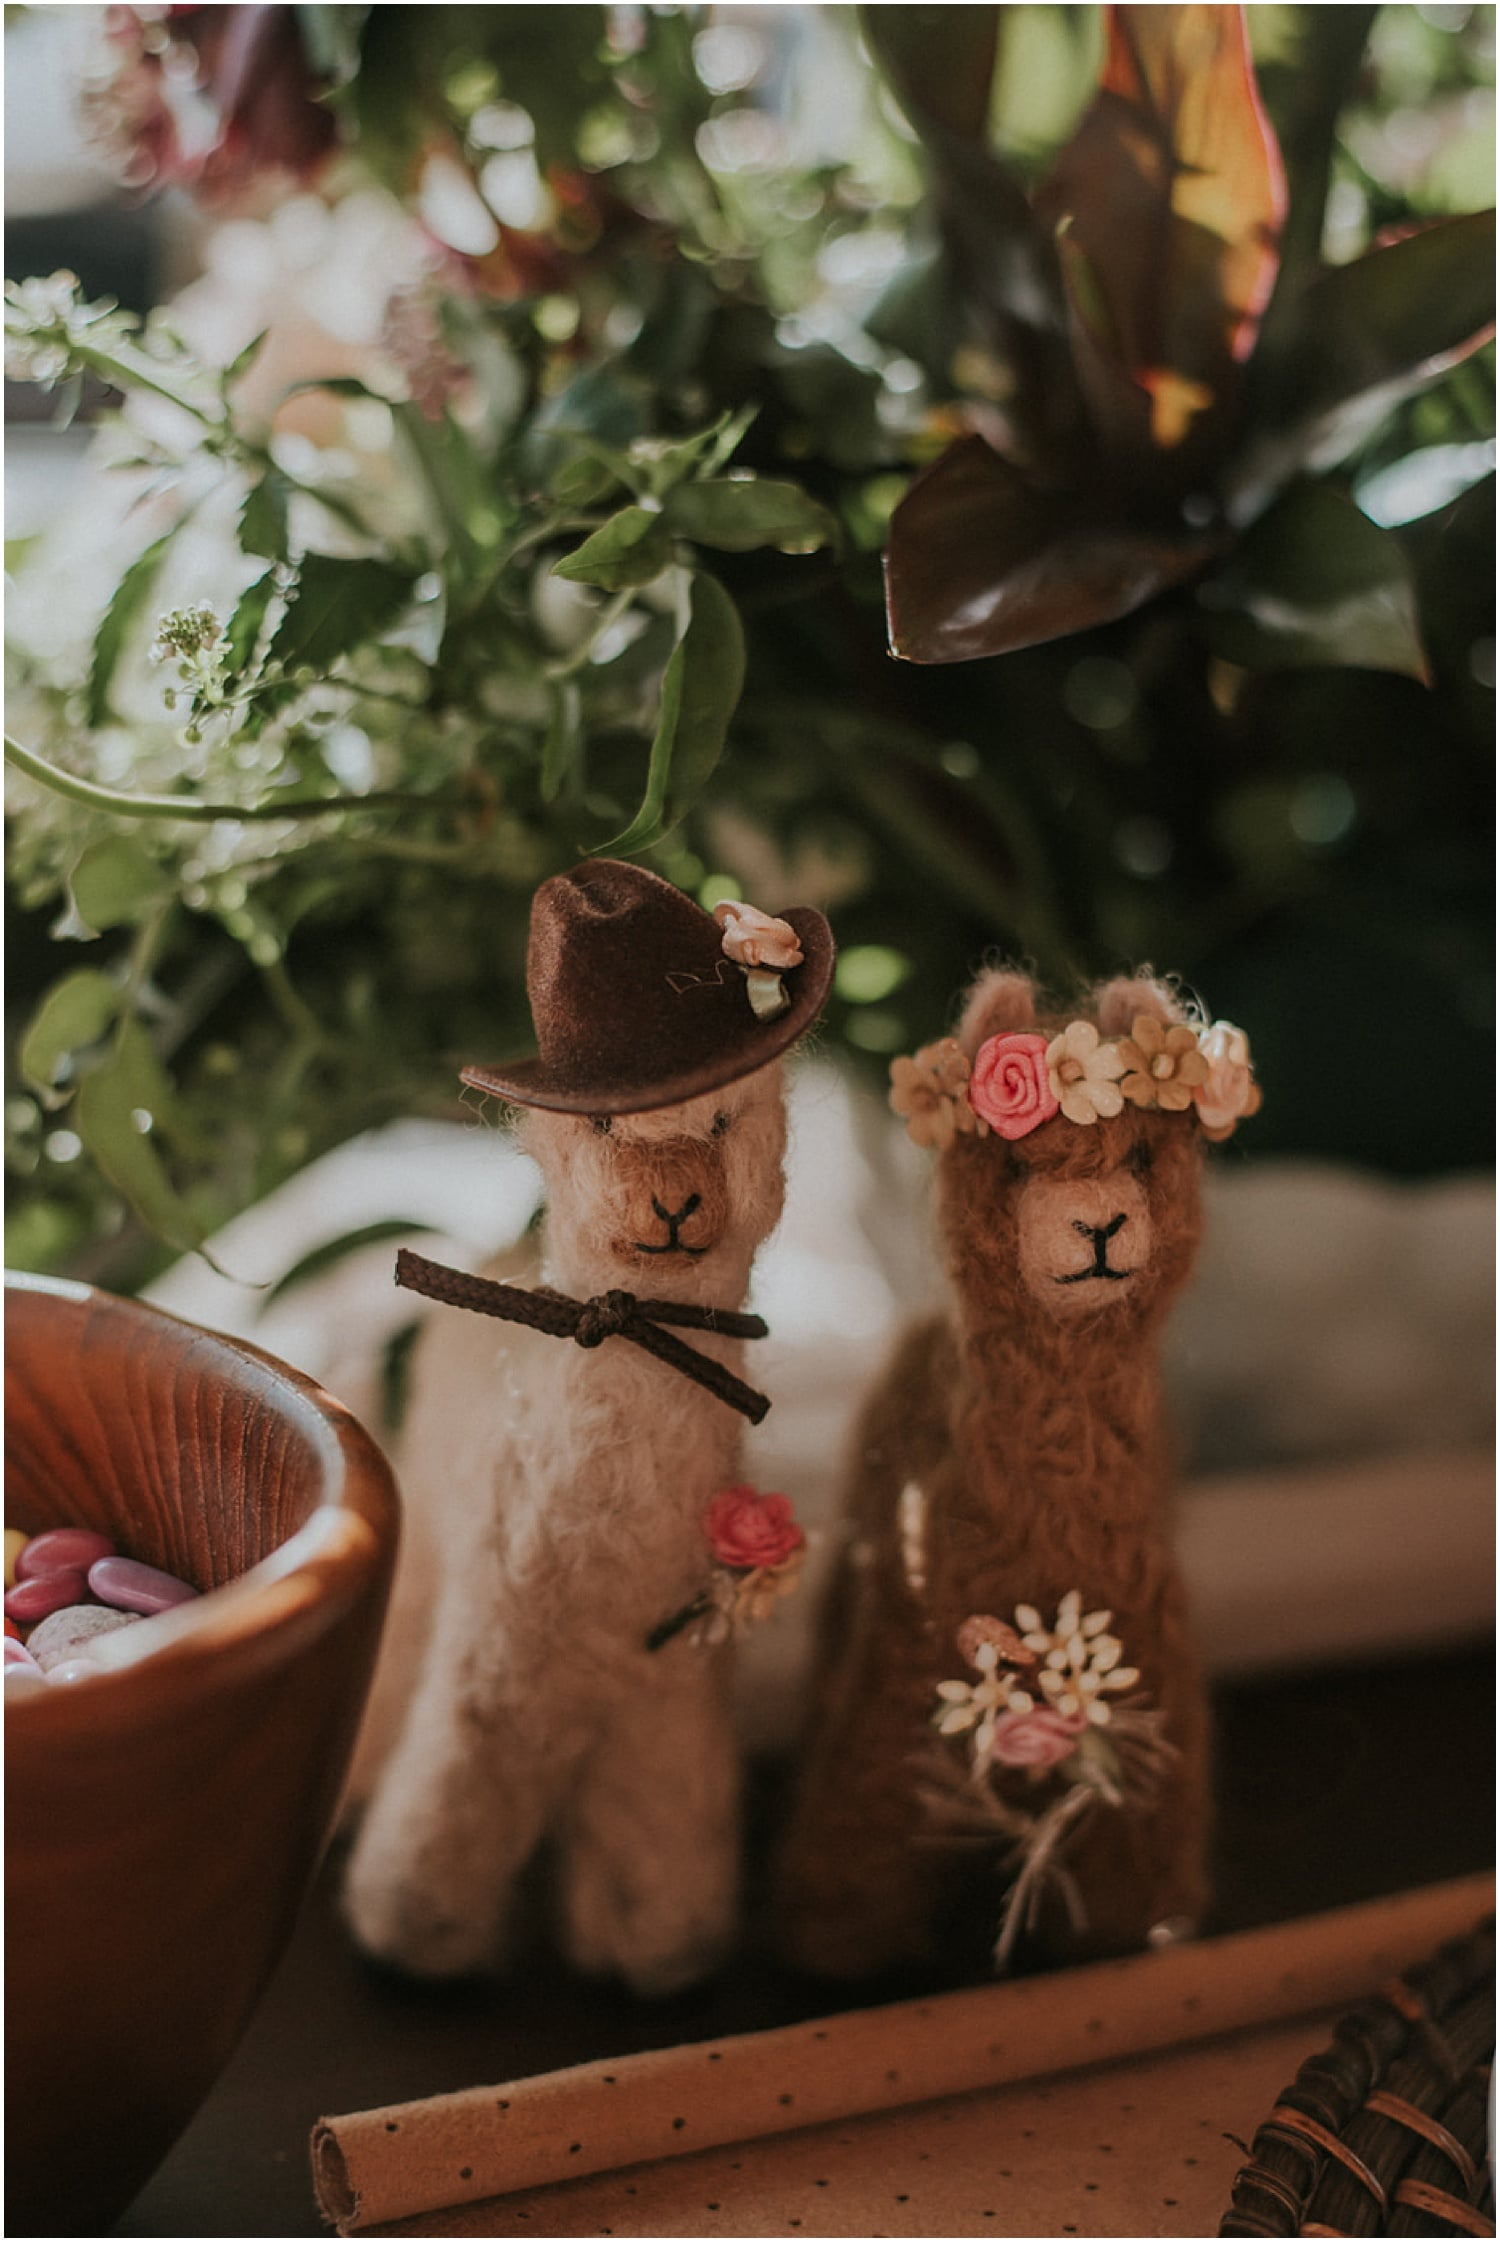 felt alpacas of the bride and groom at the Farm Elopement Inspiration